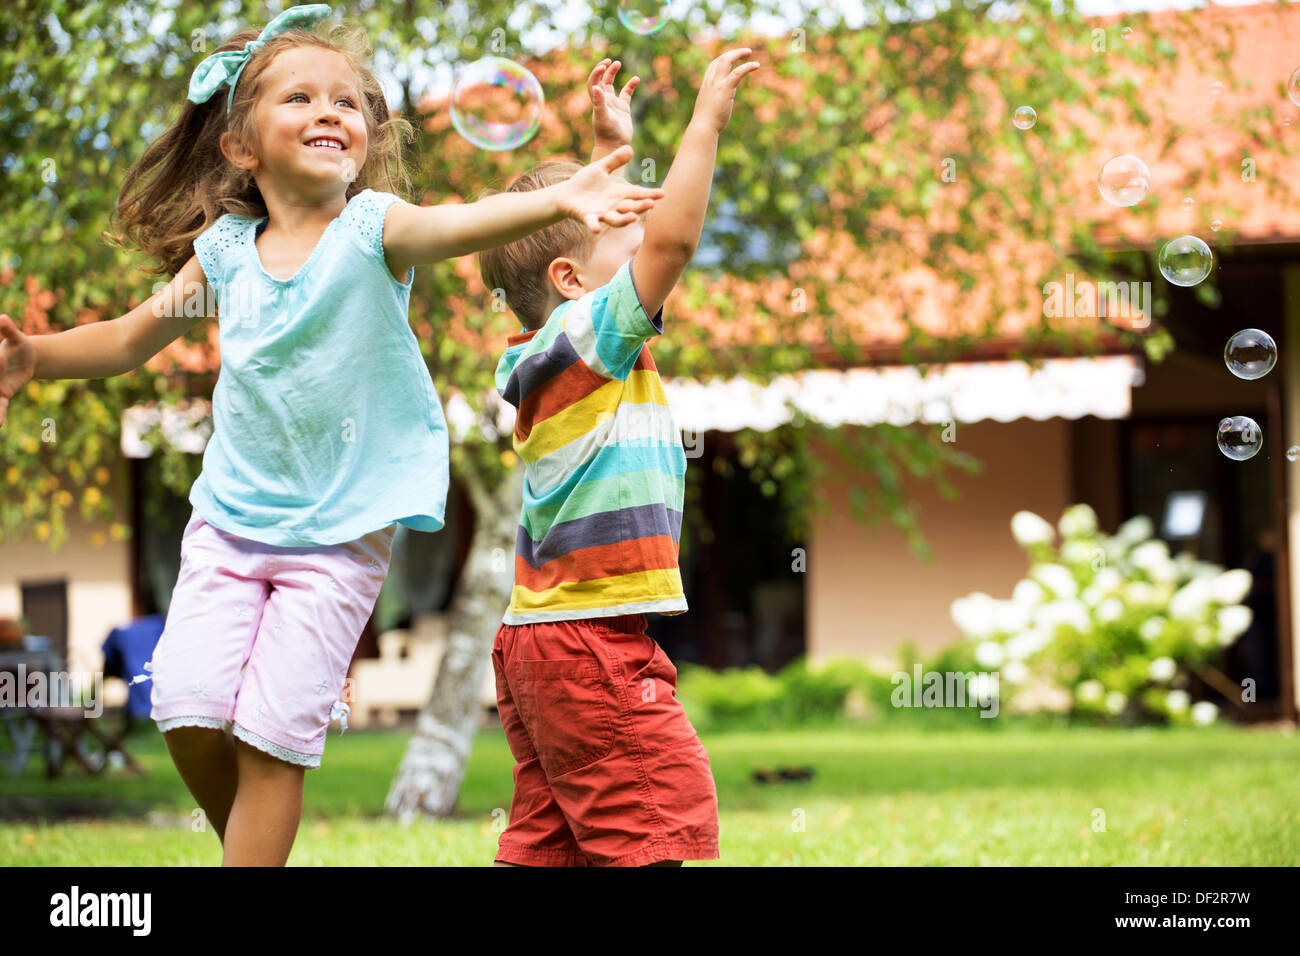 Cheerful children chasing the soap bubbles - Stock Image